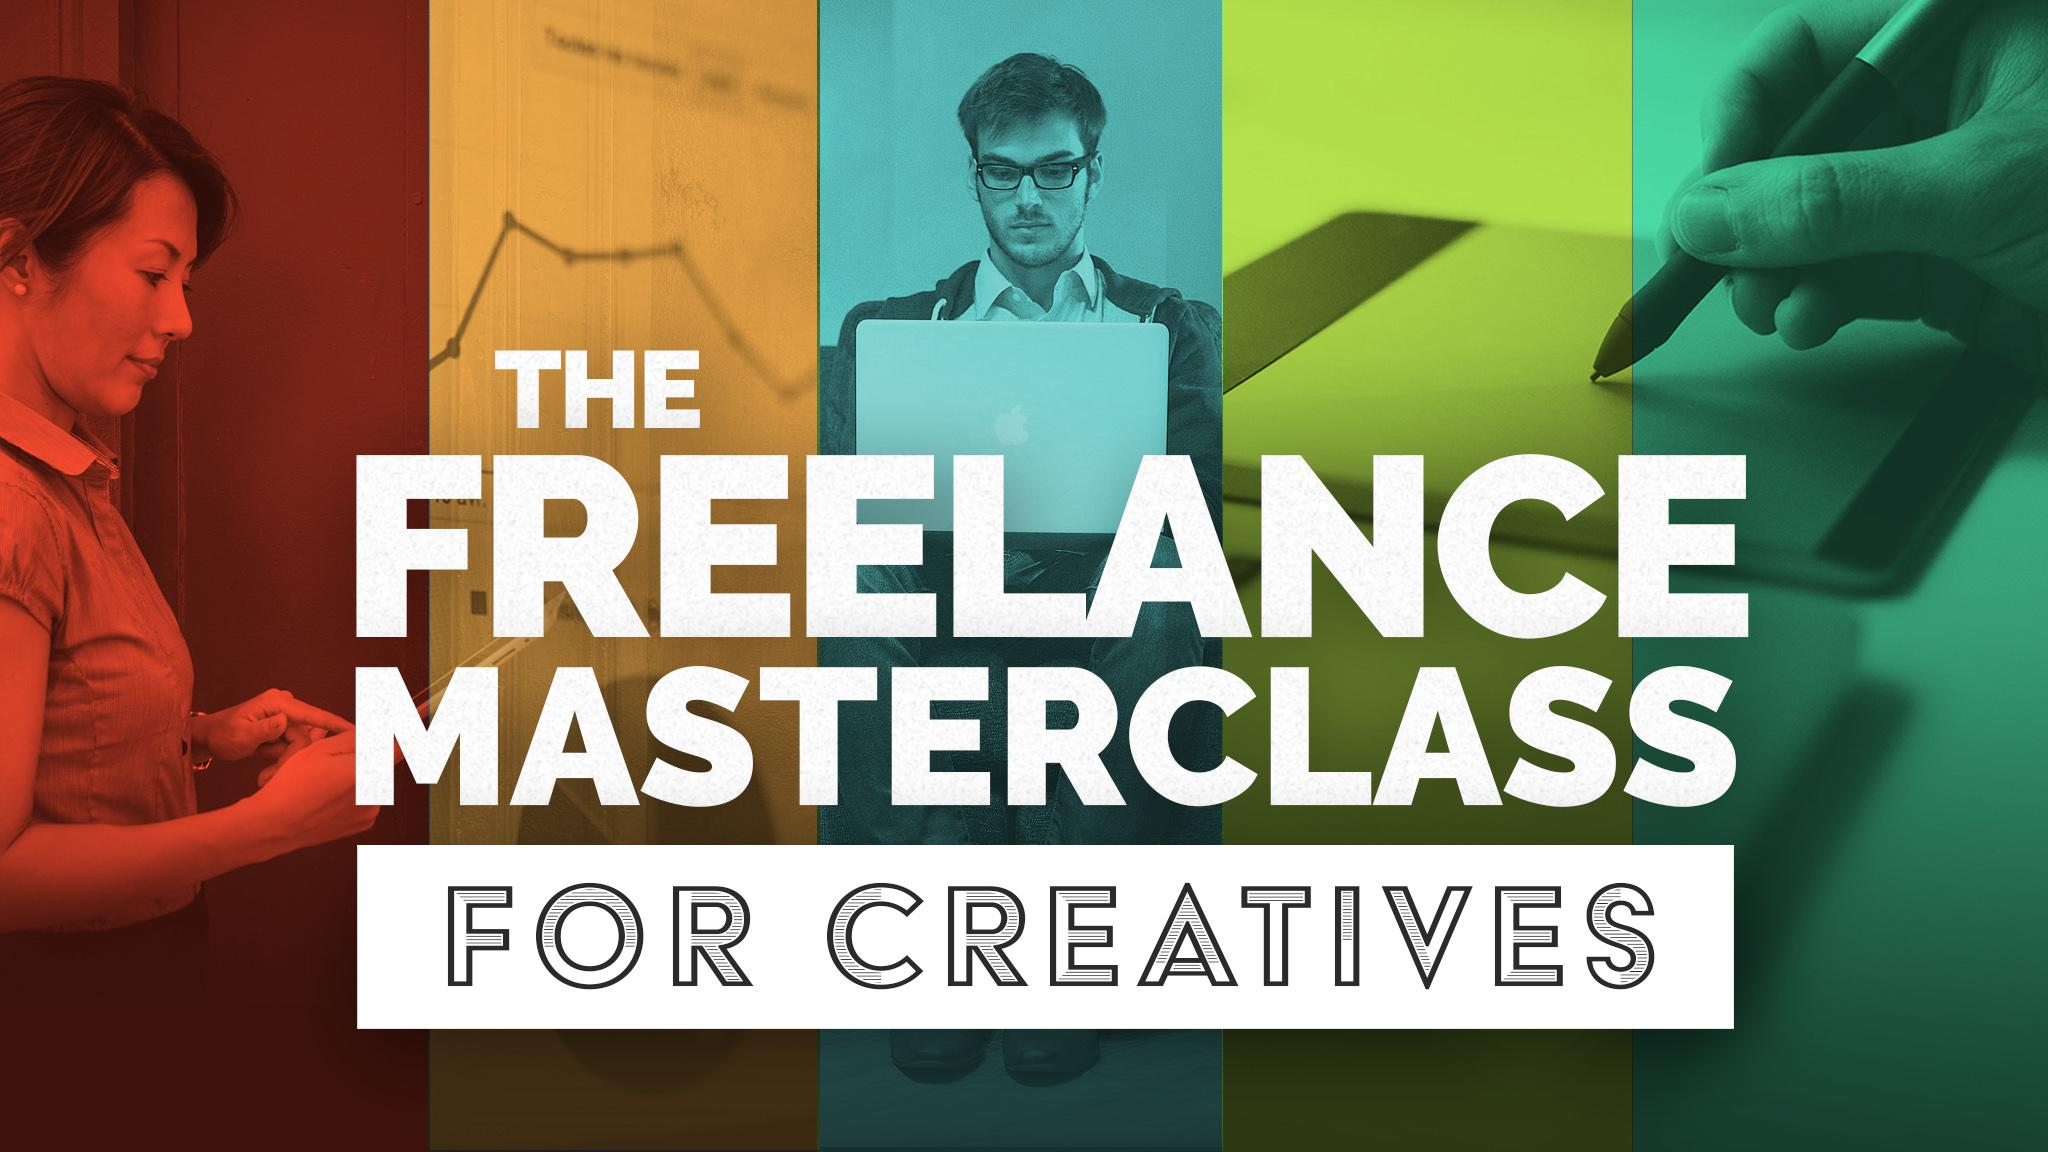 HERE EARLY! The Freelance Masterclass: The Ultimate Guide to